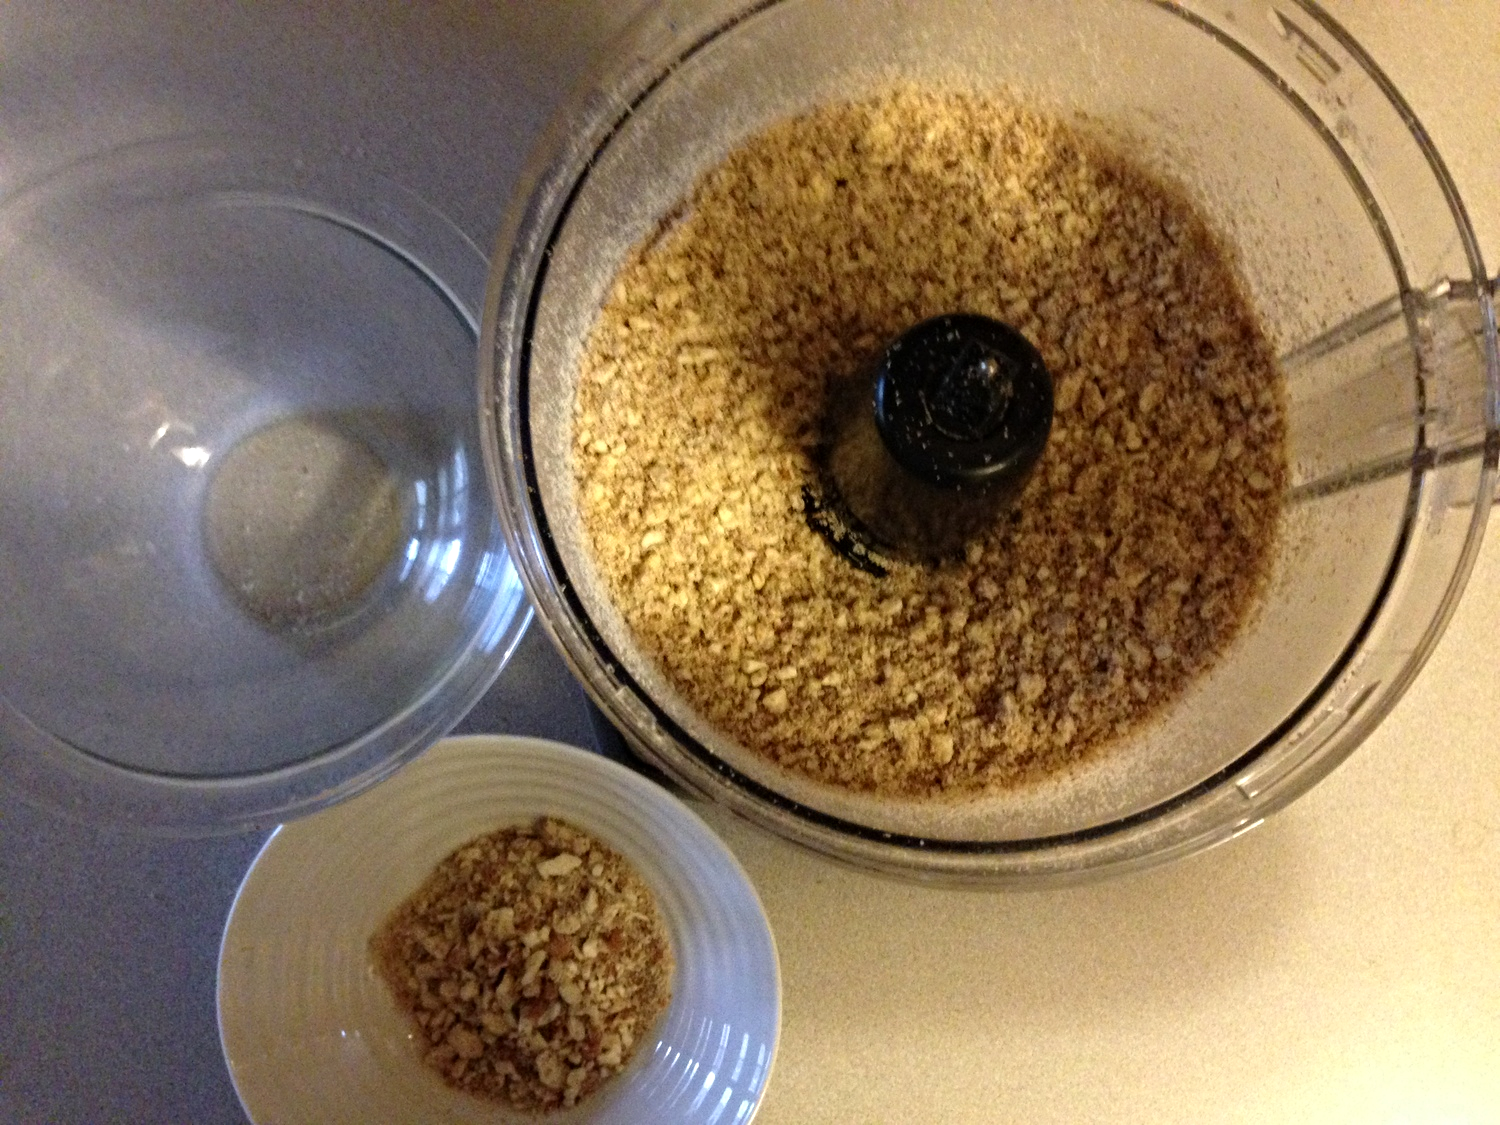 Ground almonds in food processor for homemade, healthy nut butter.